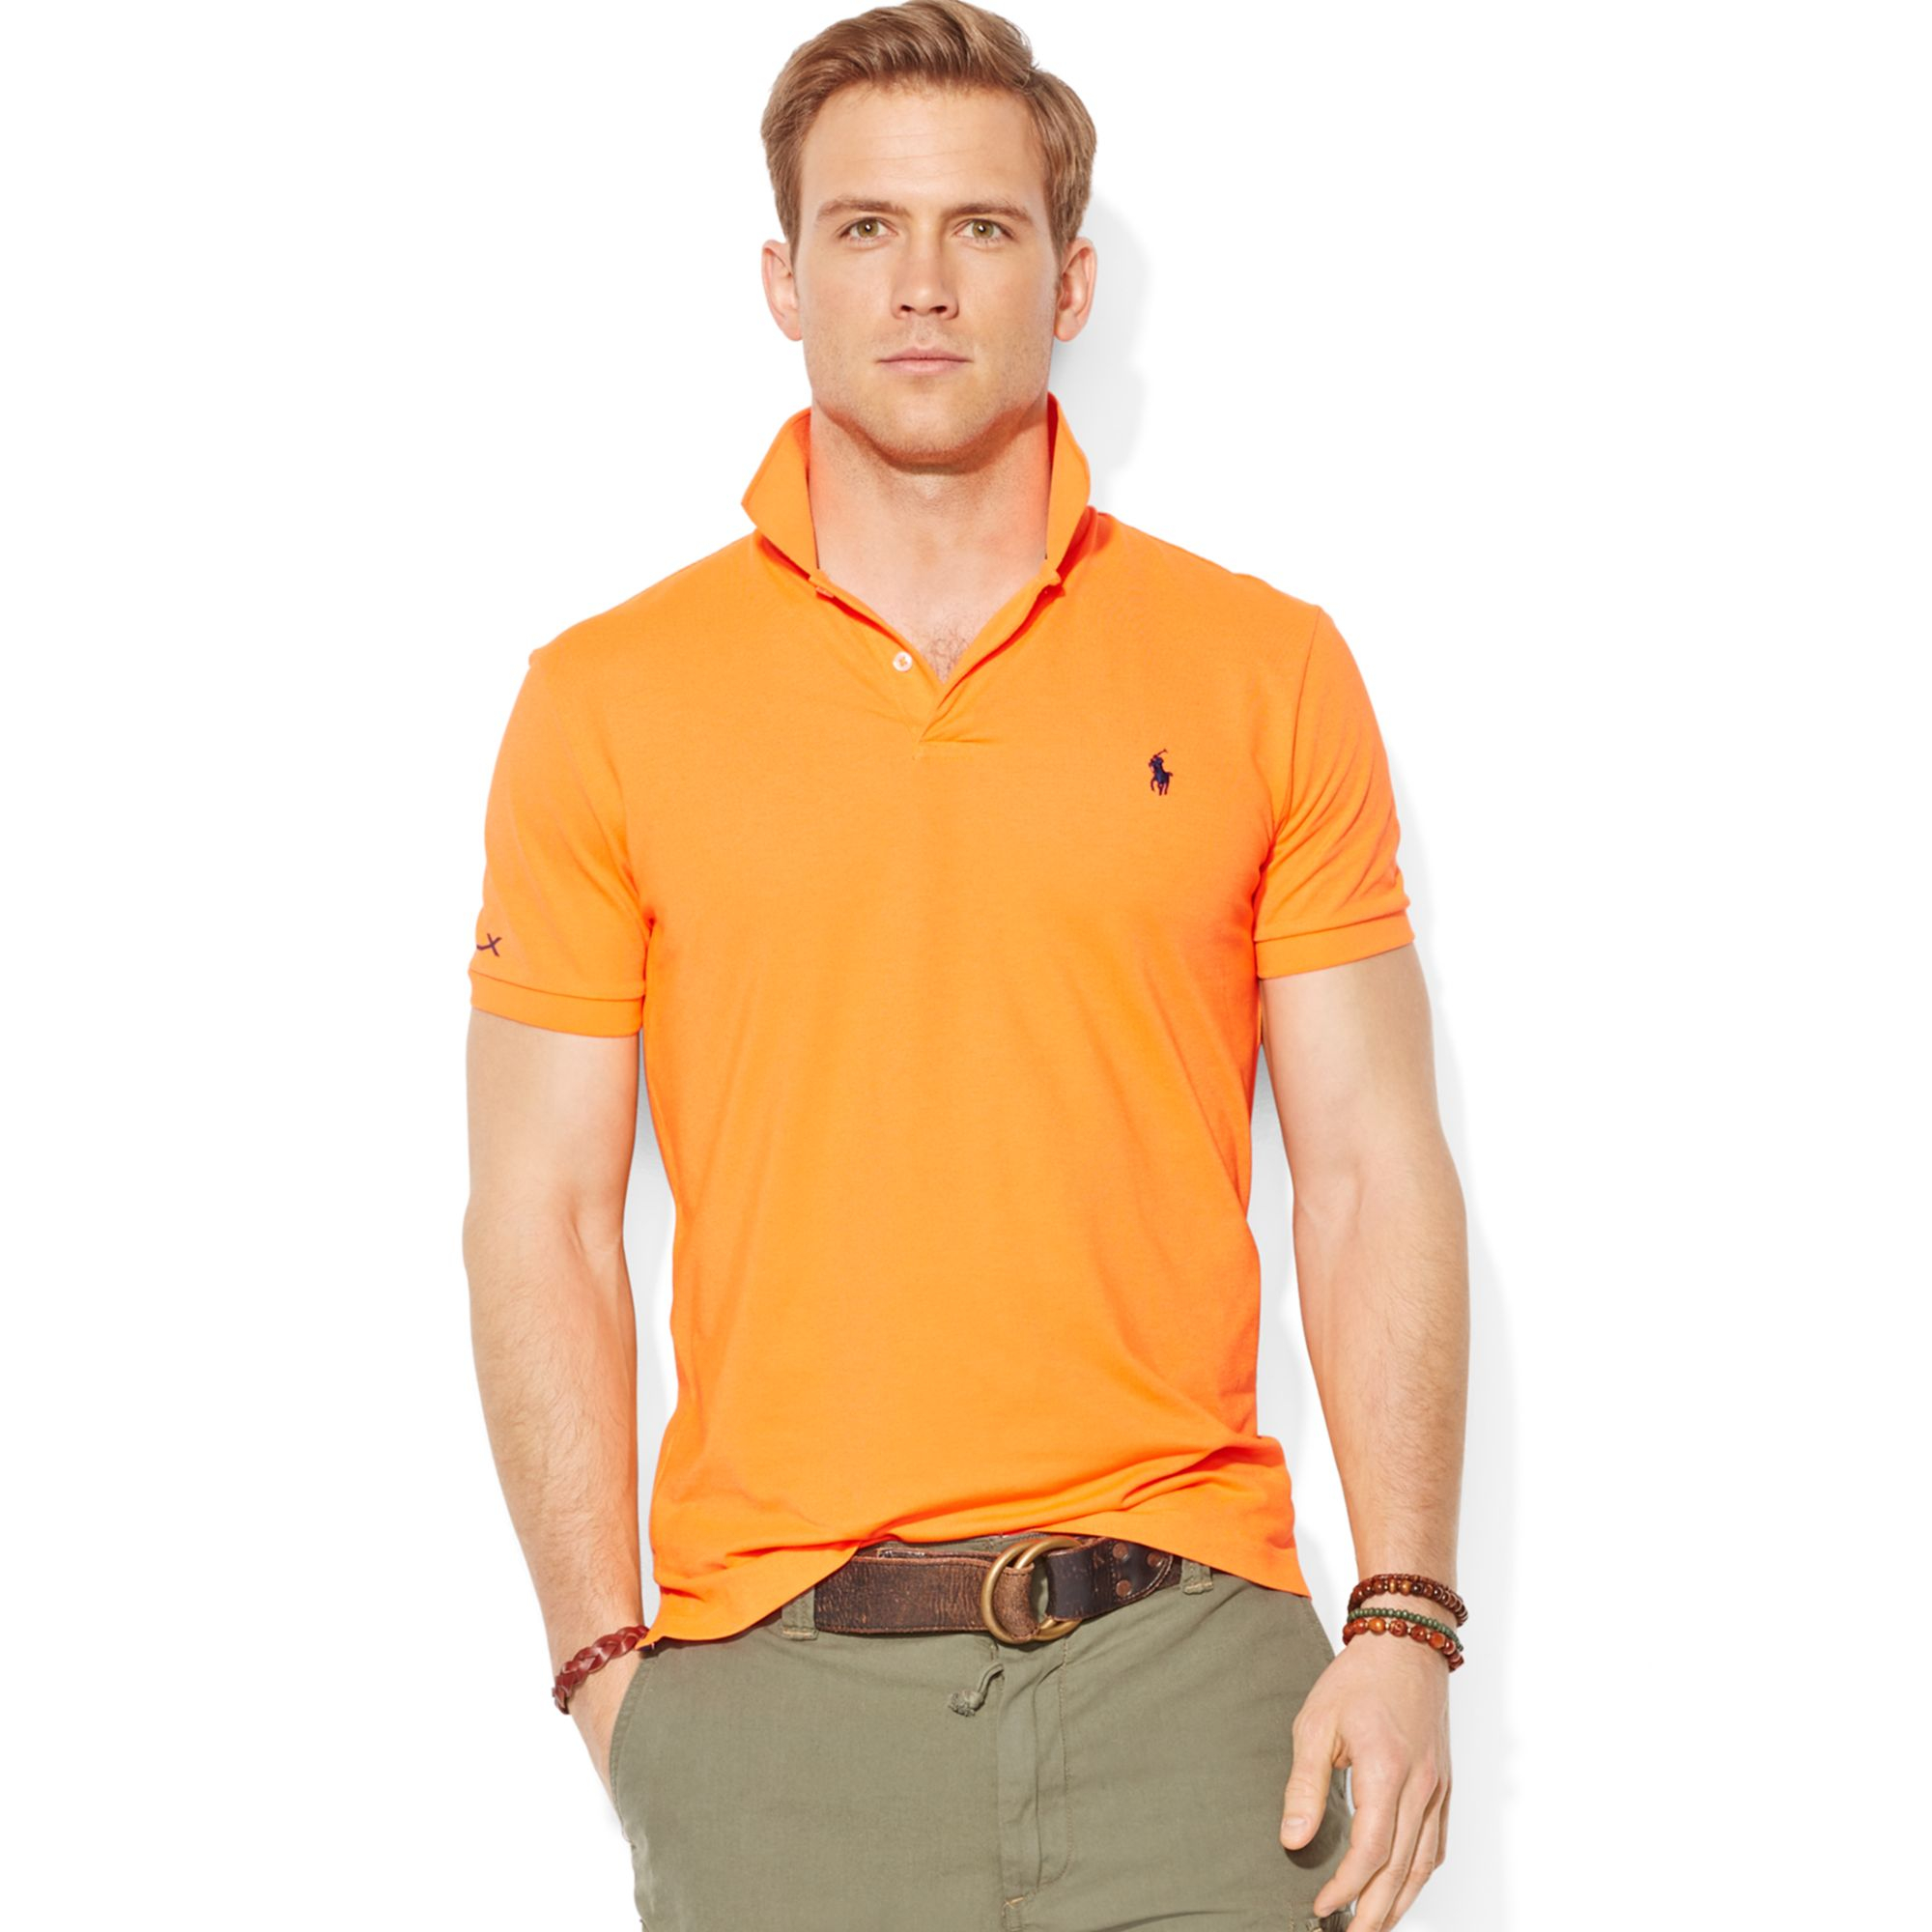 ralph lauren polo performance polo shirt in orange for men shocking orange lyst. Black Bedroom Furniture Sets. Home Design Ideas